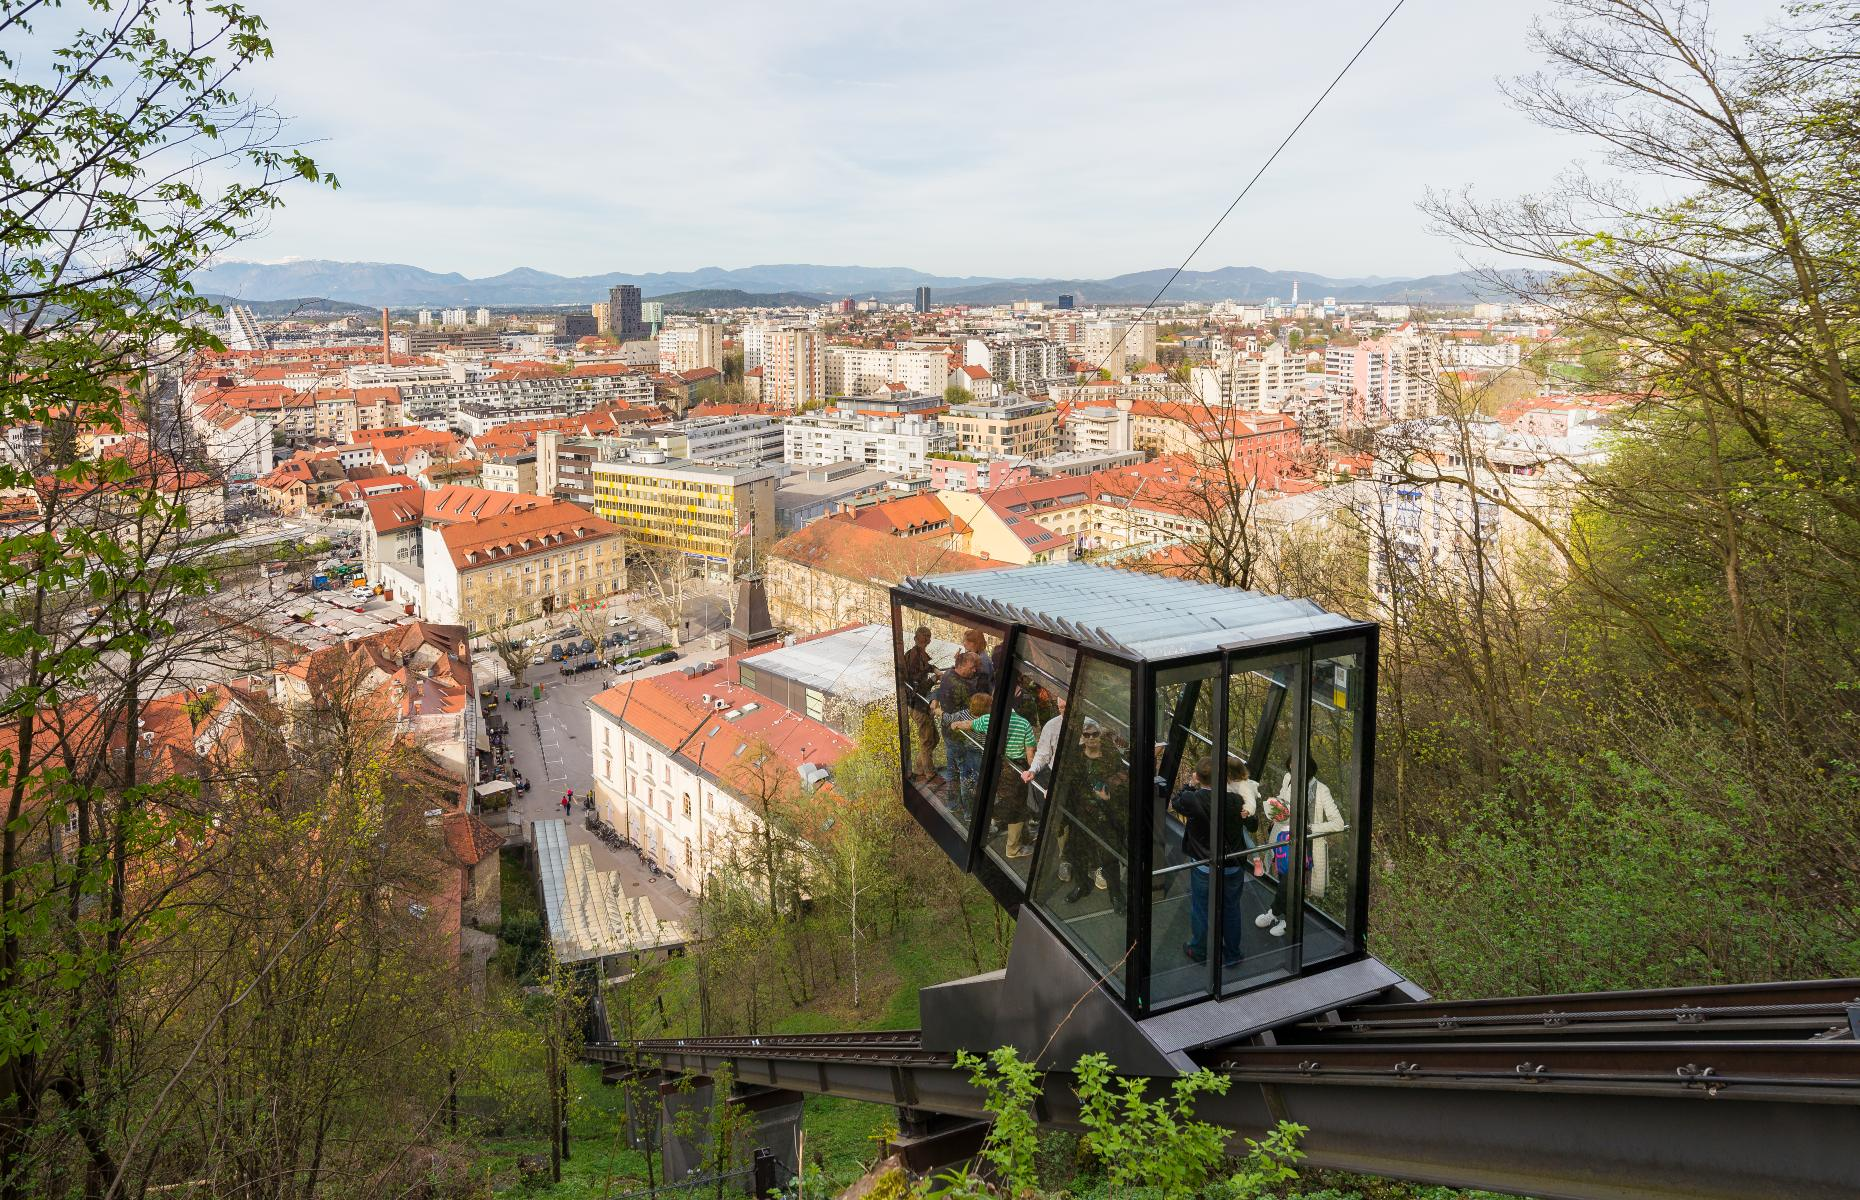 View of the city from the funicular (Image: blazg/Shutterstock)